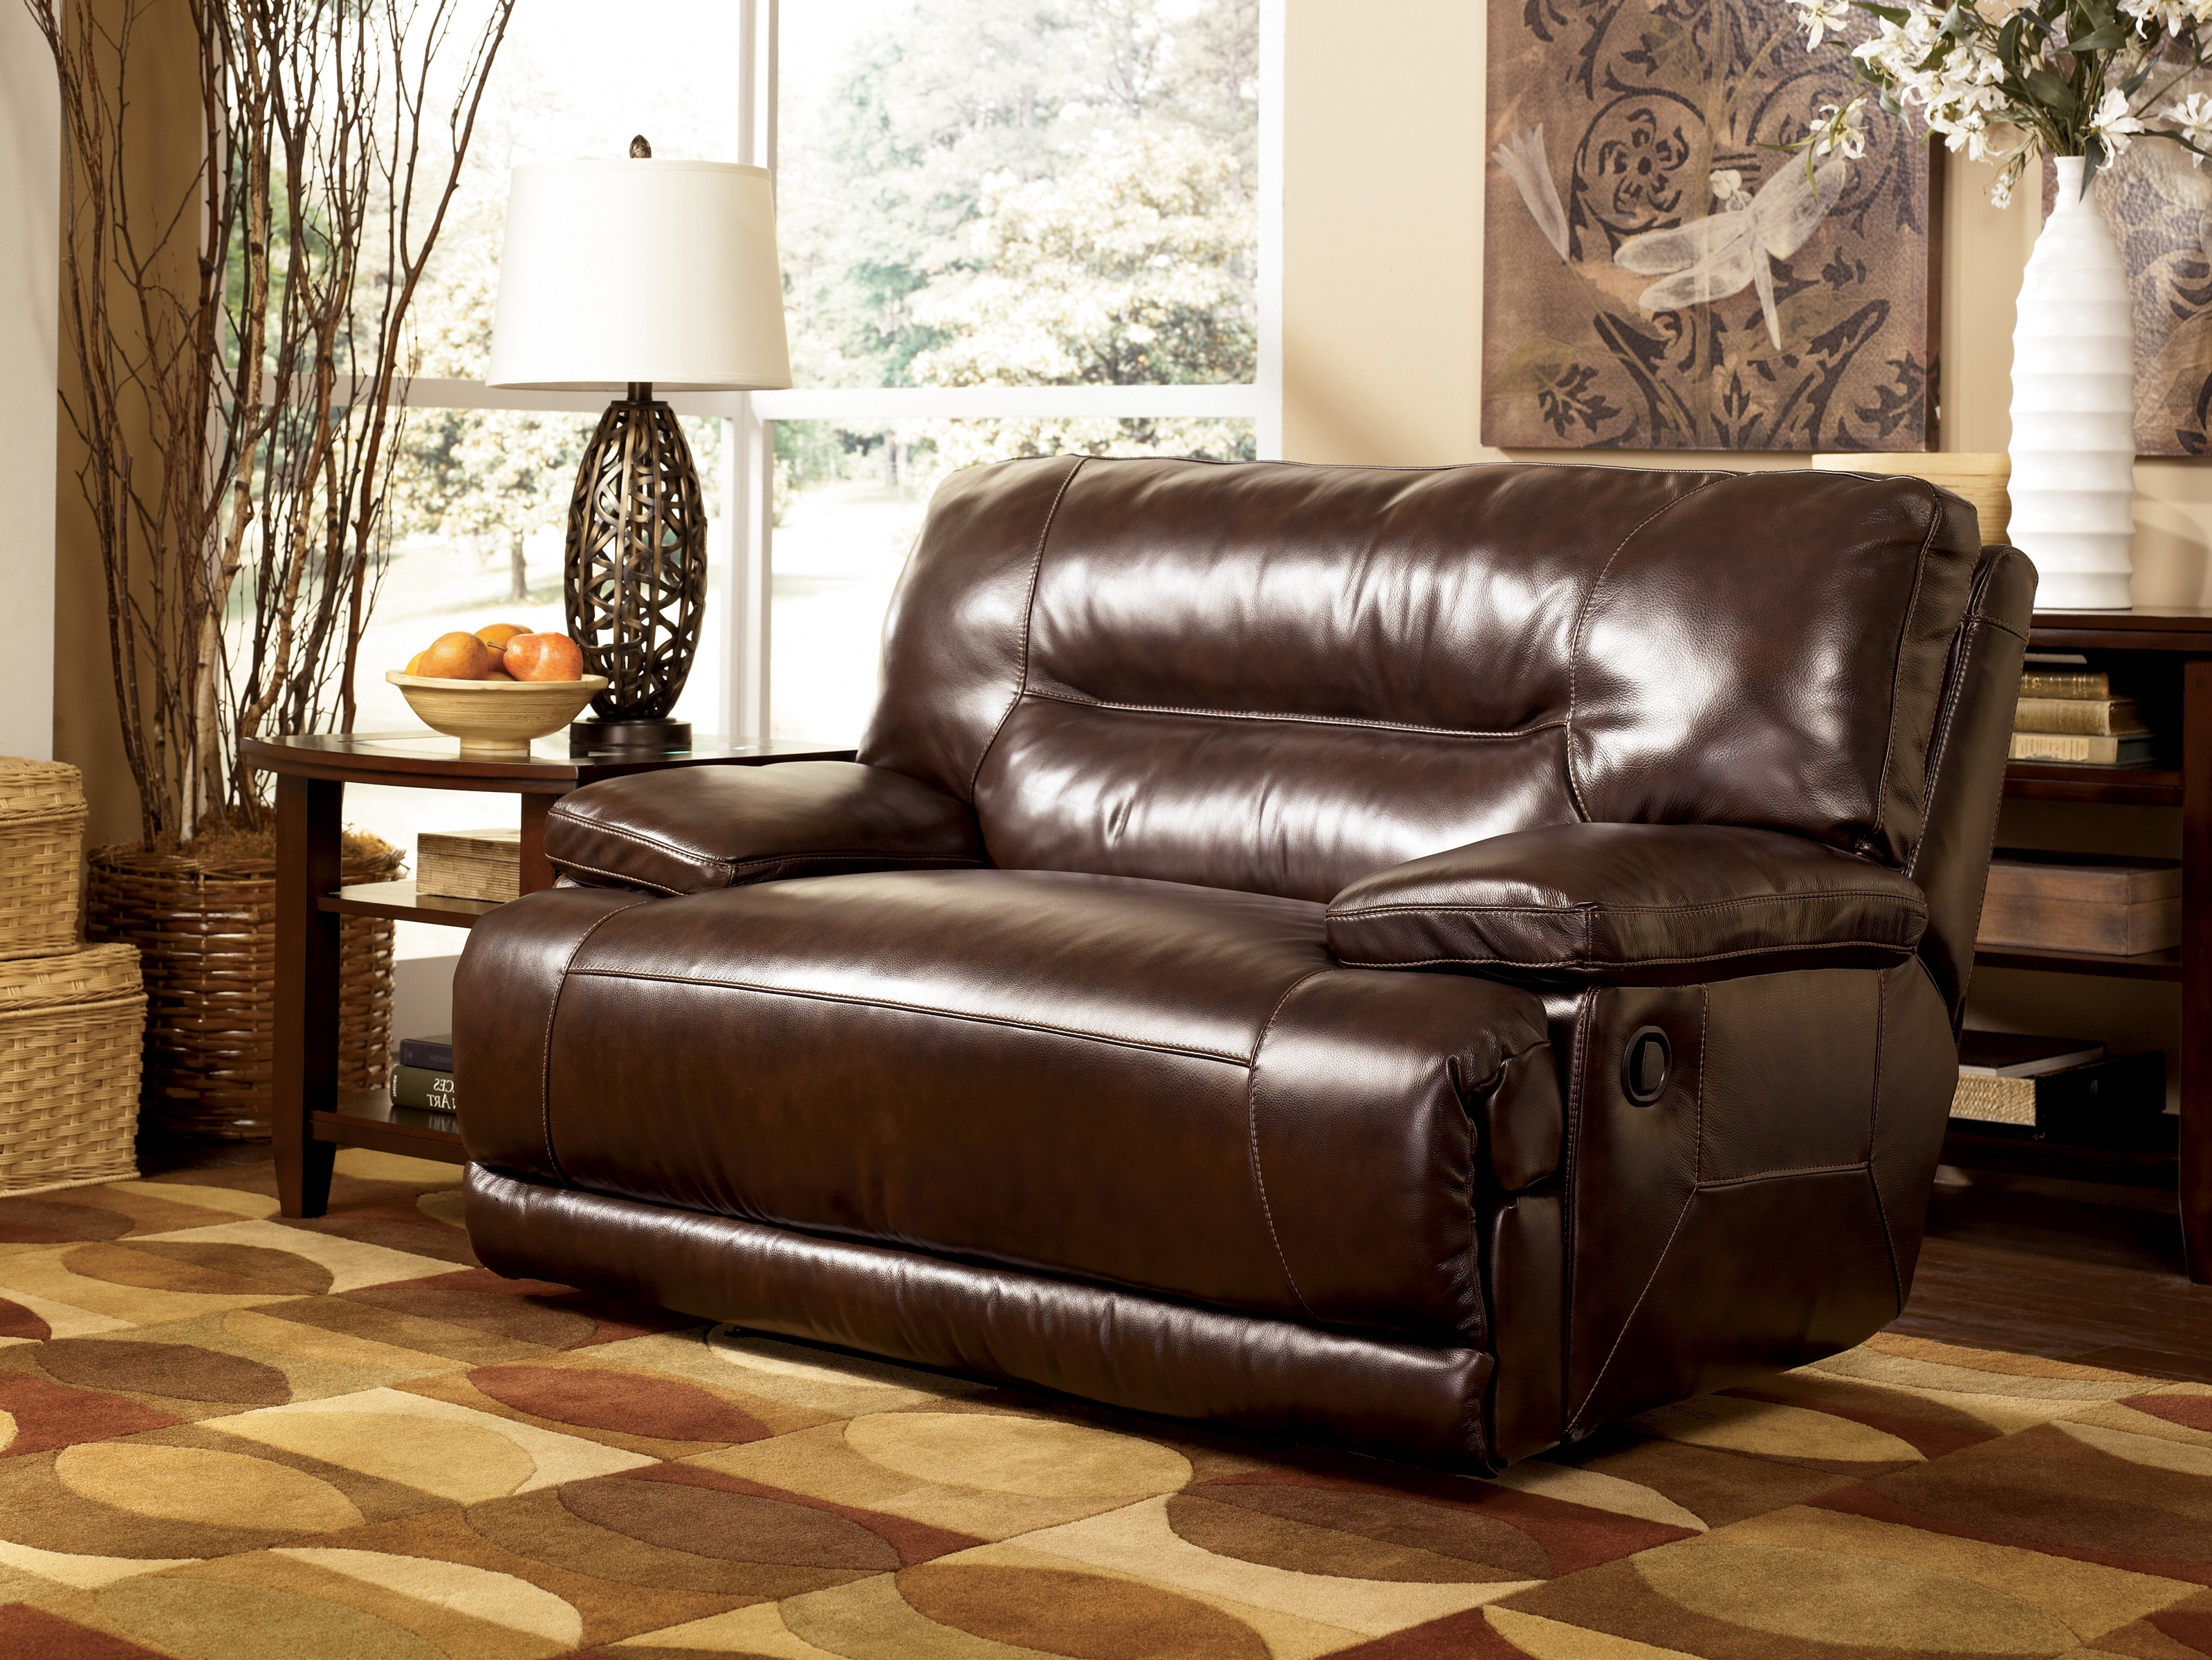 Decorating: Luxury Catnapper Recliner For Equip And Beautify Your With Regard To Best And Newest Catnapper Jackpot Reclining Chaises (View 11 of 15)